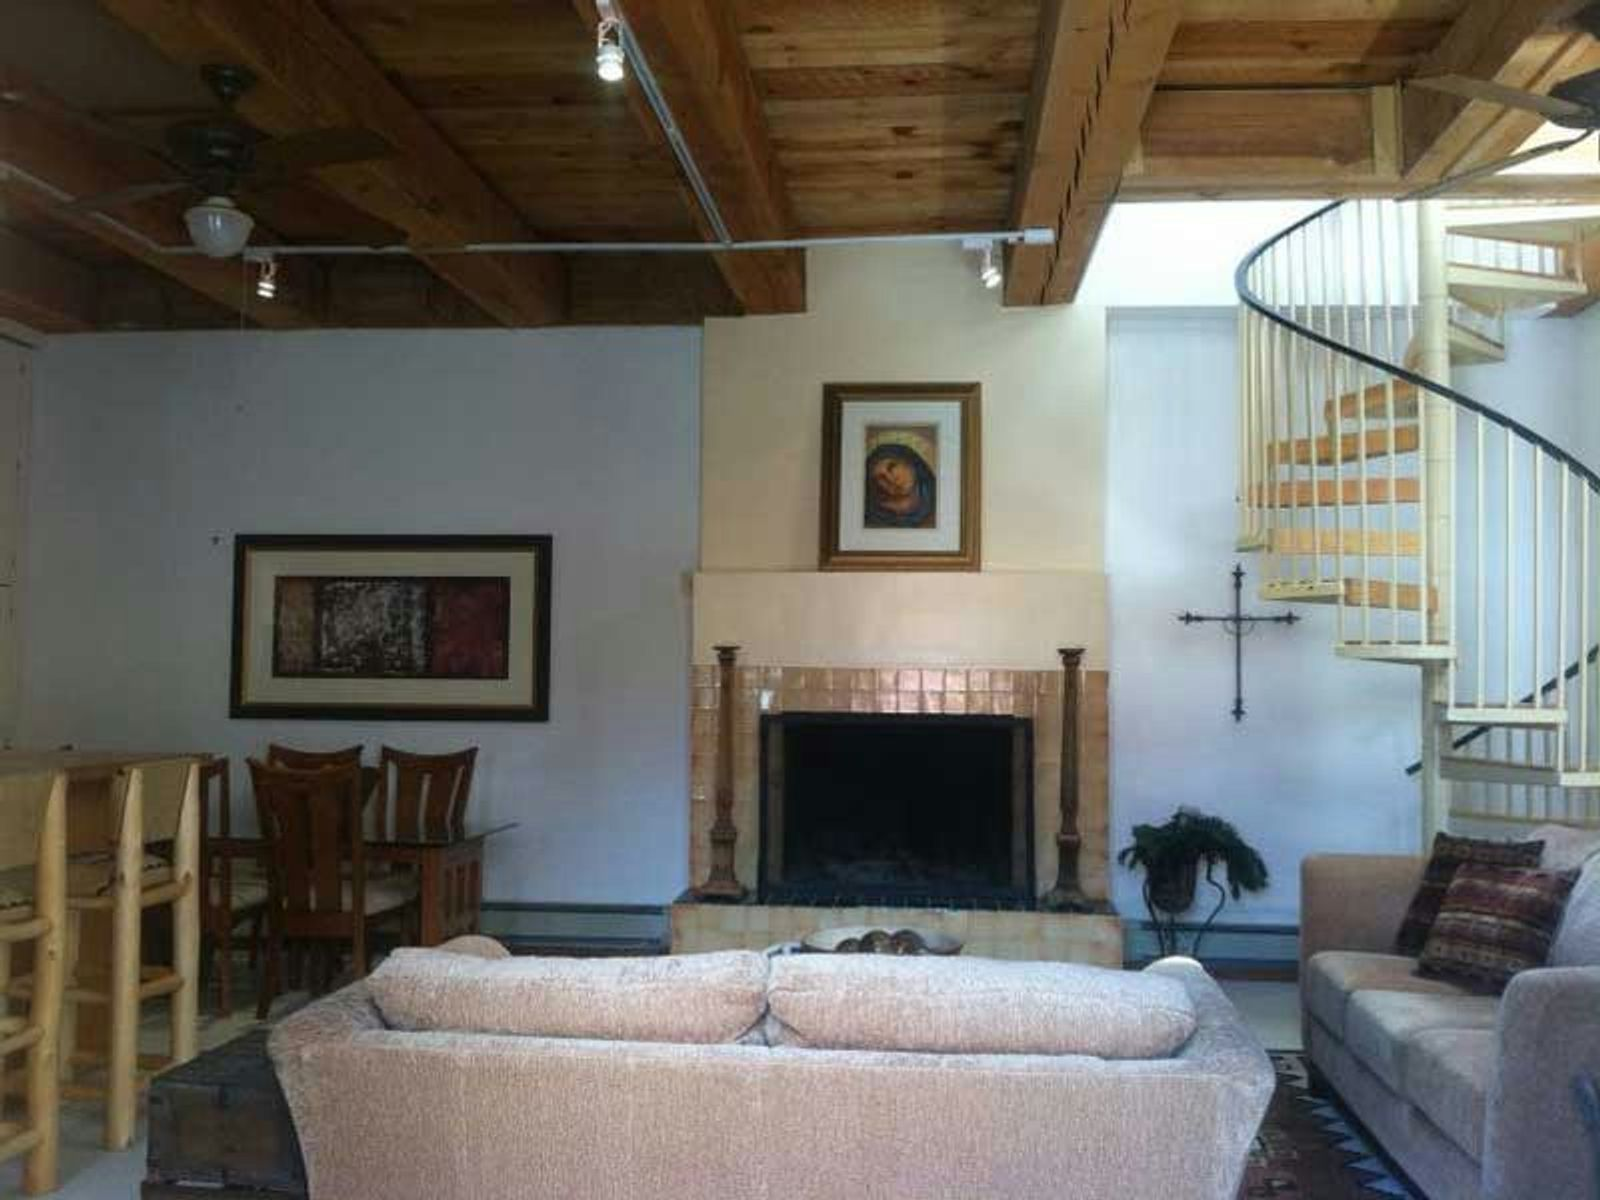 637 Alto Steet #C (Lower), Santa Fe NM Condominium - Santa Fe Real Estate